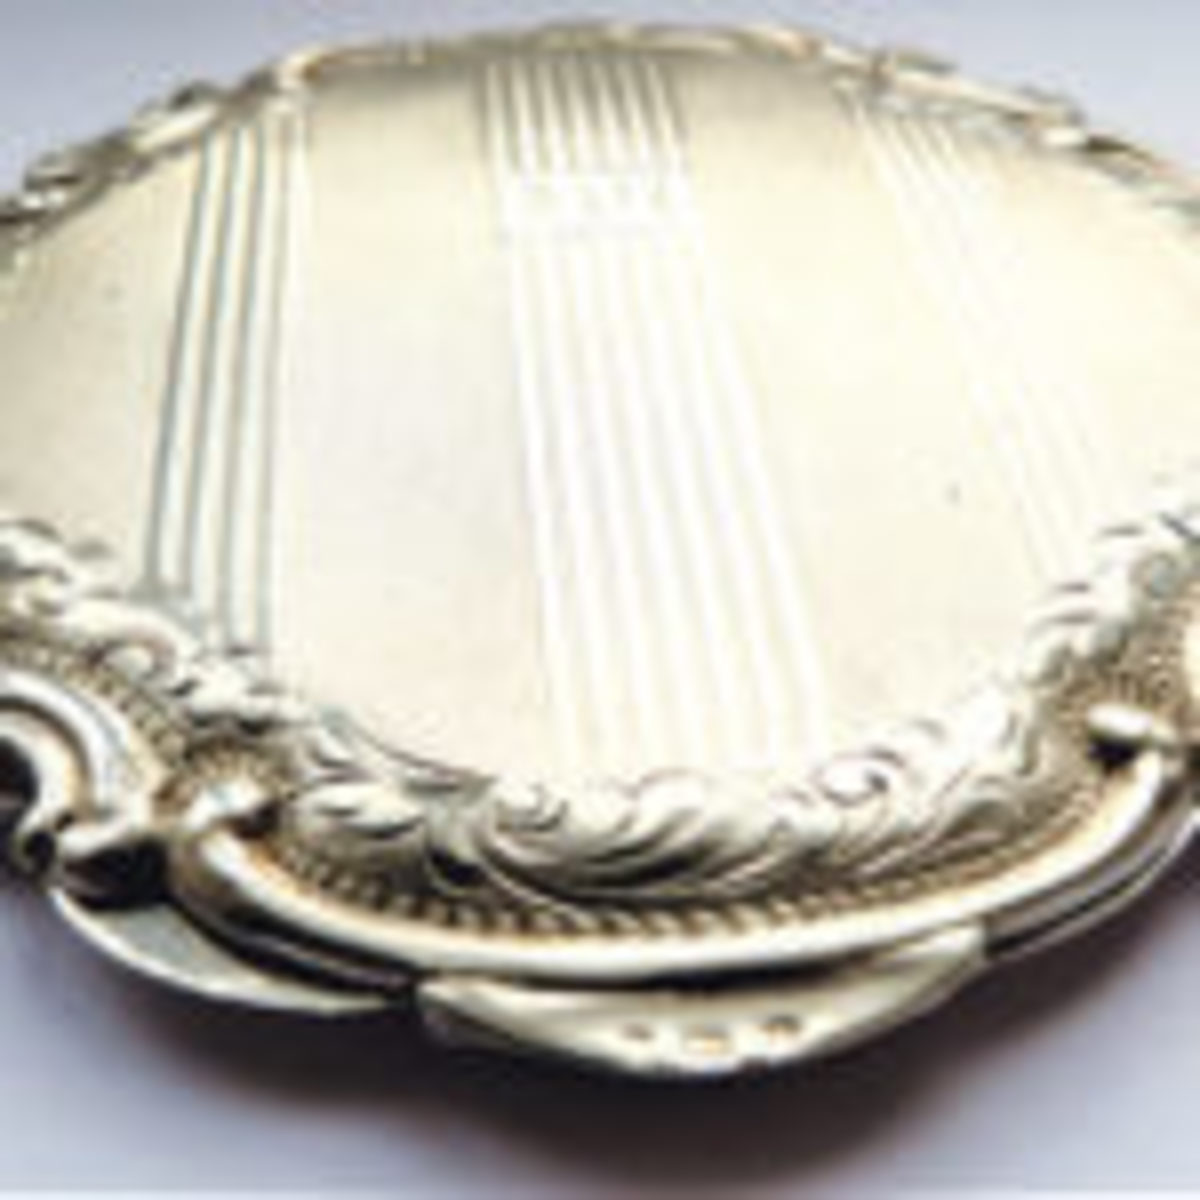 Solid, high quality silver, hallmarked Czechoslovakian compact